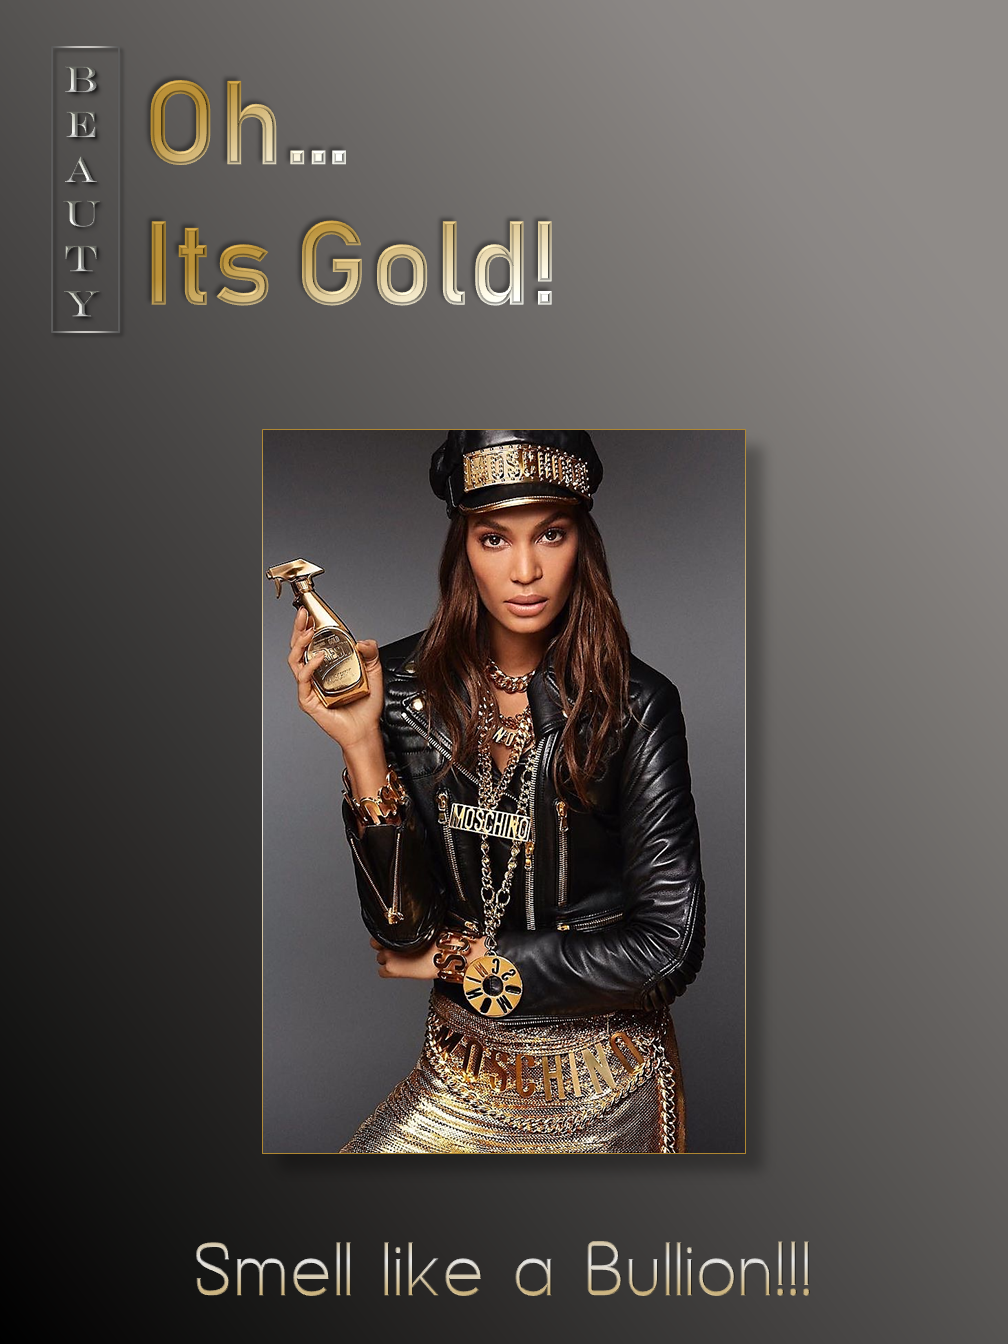 Its Gold!